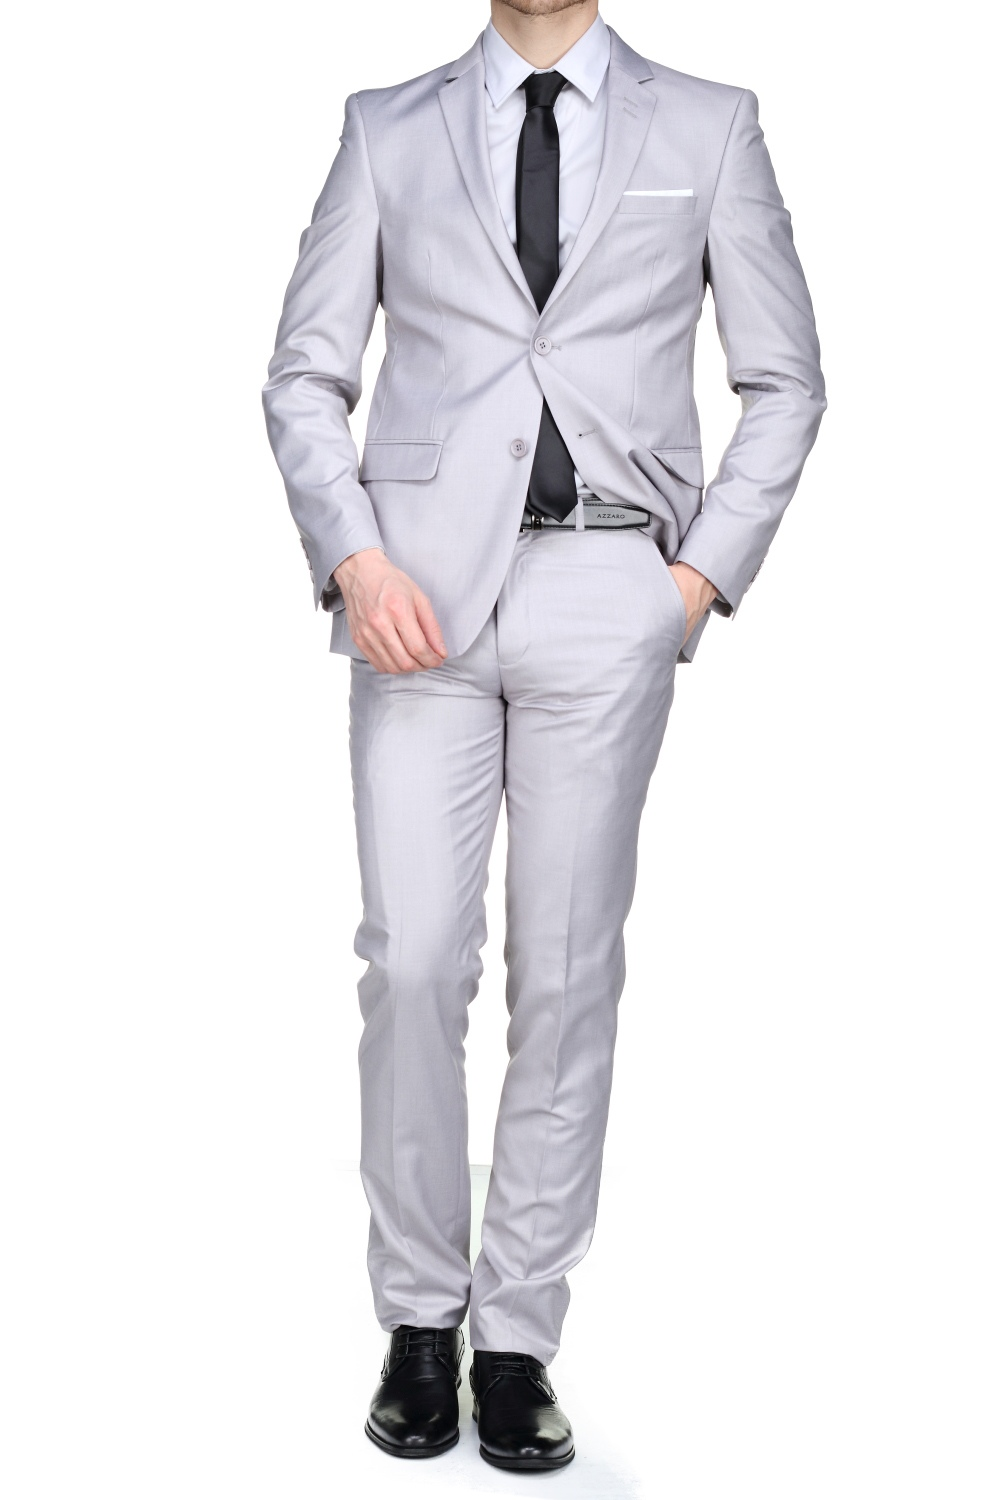 http://www.leadermode.com/144666/jean-louis-scherrer-sch083-jack-uni-2p-2018-light-grey.jpg